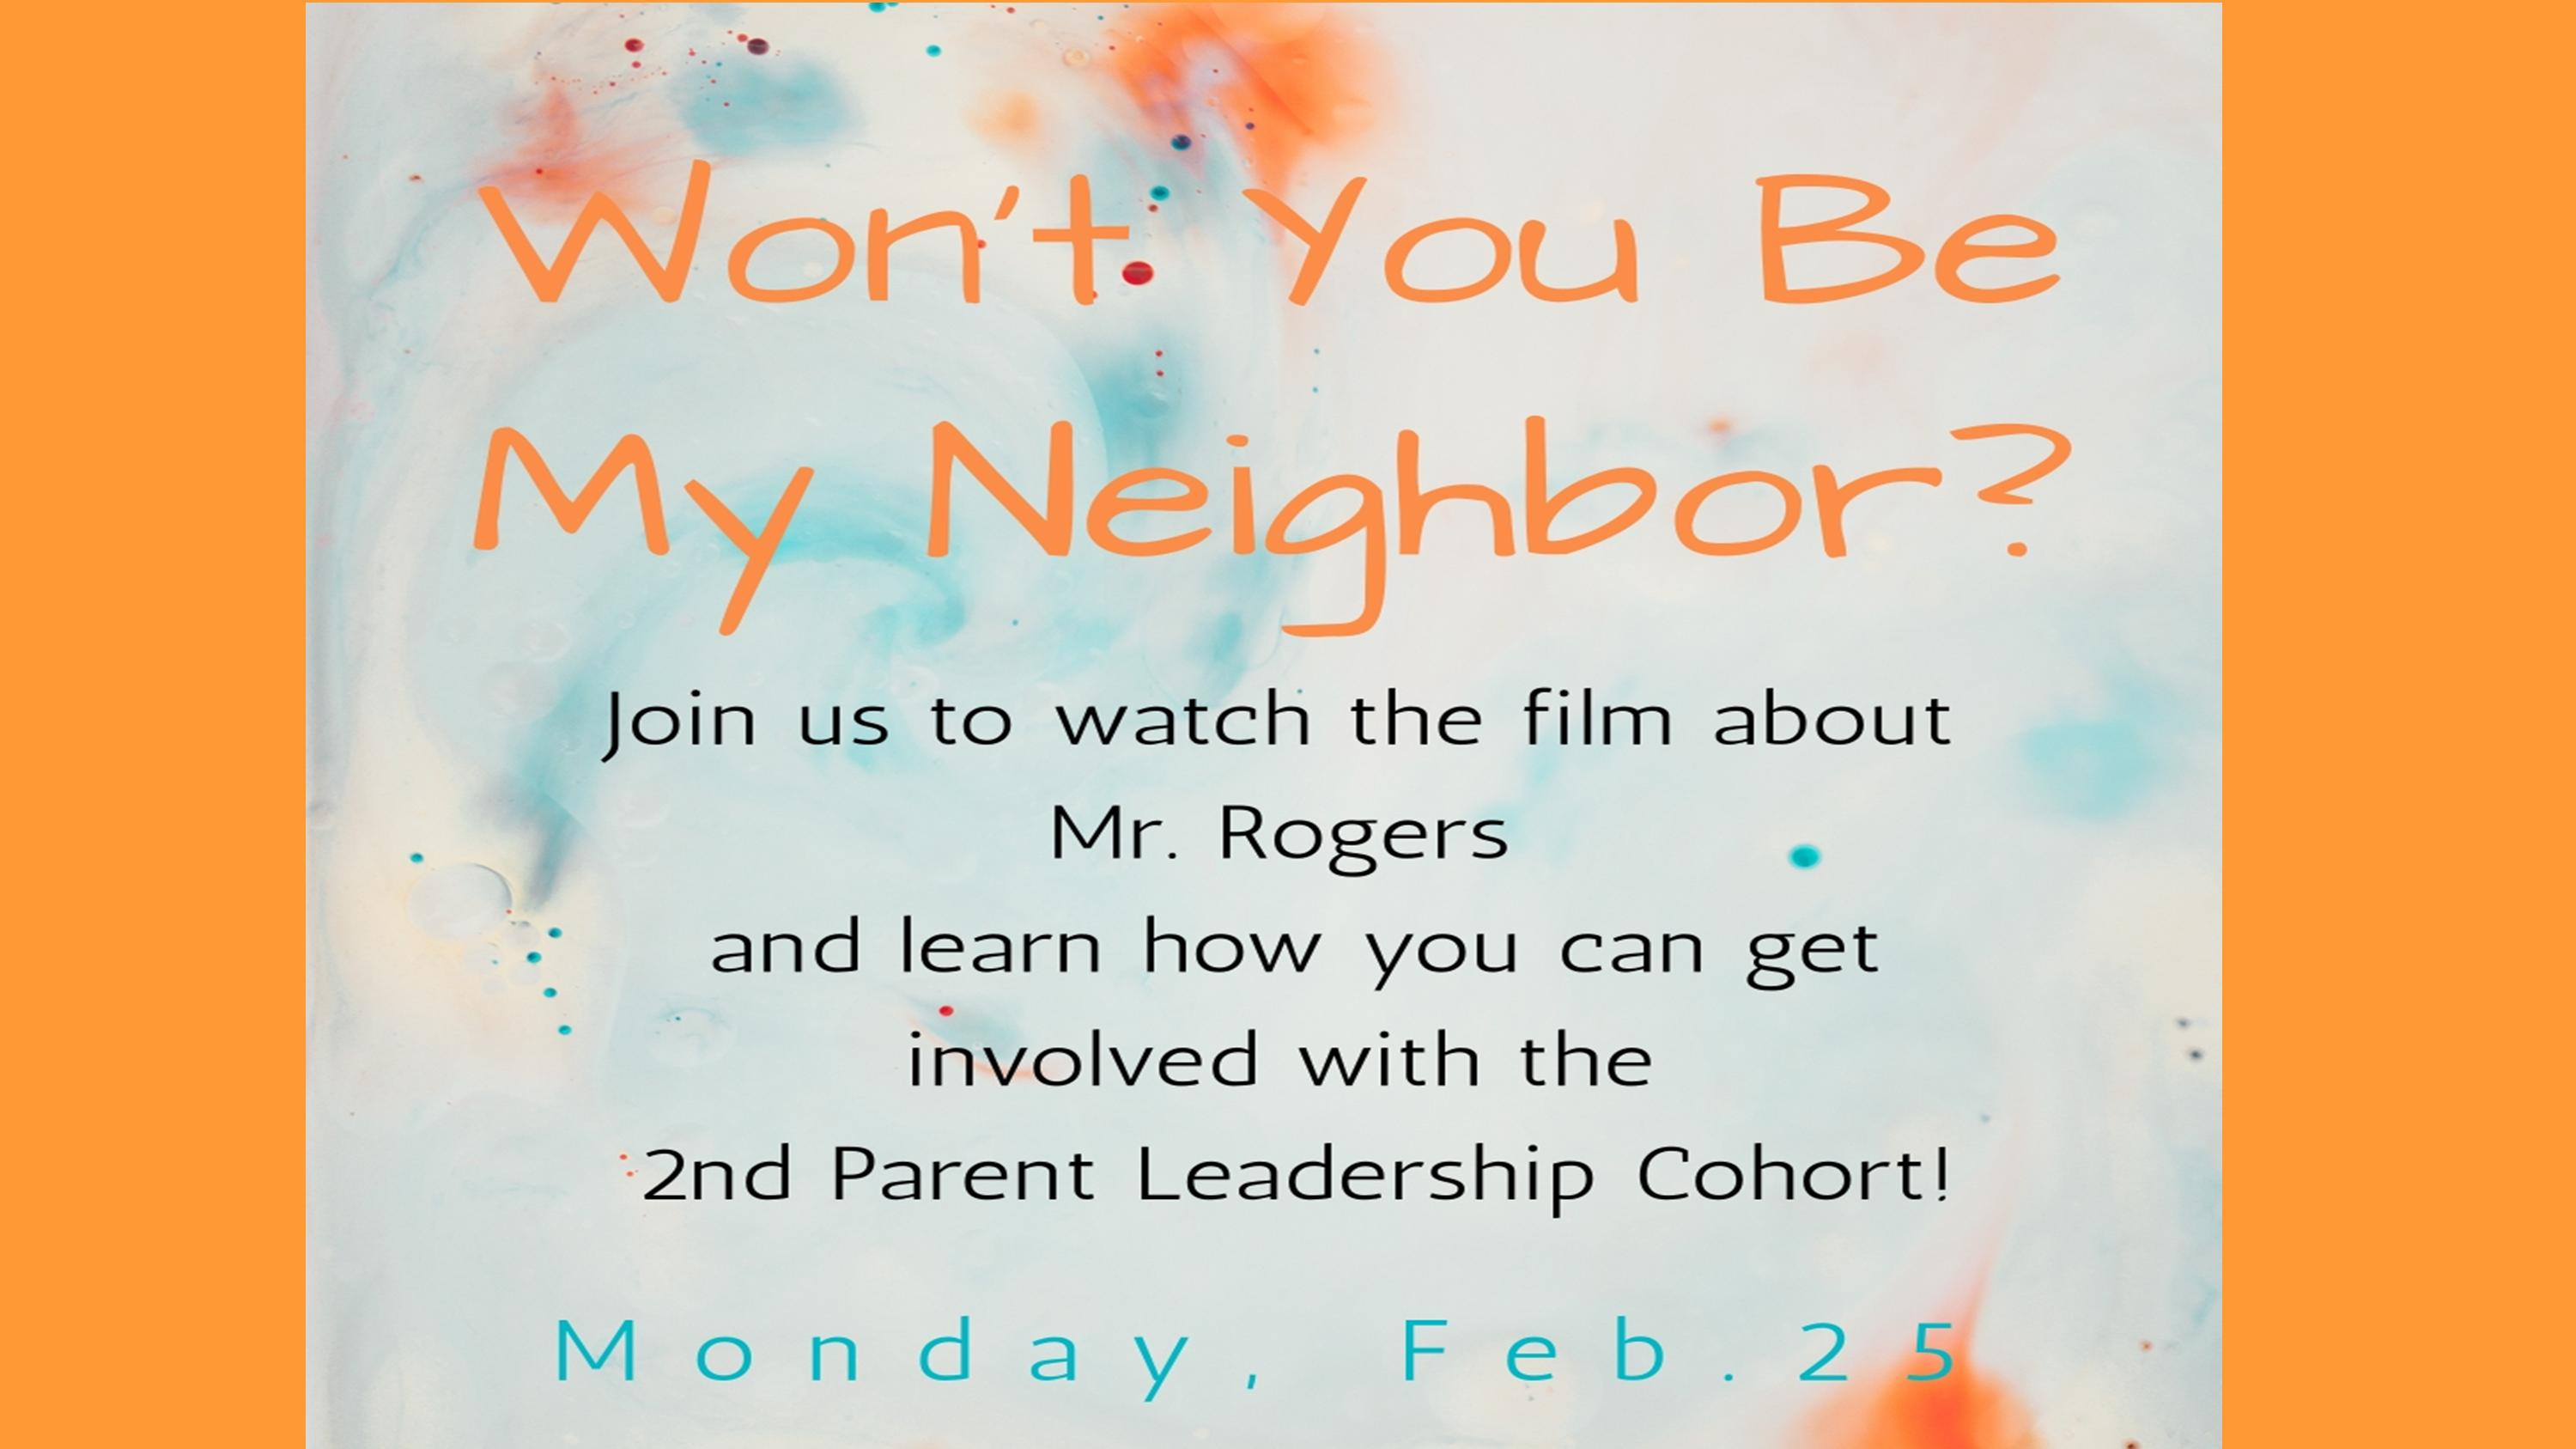 z-Wont-You-be-My-Neighbor-Feb.